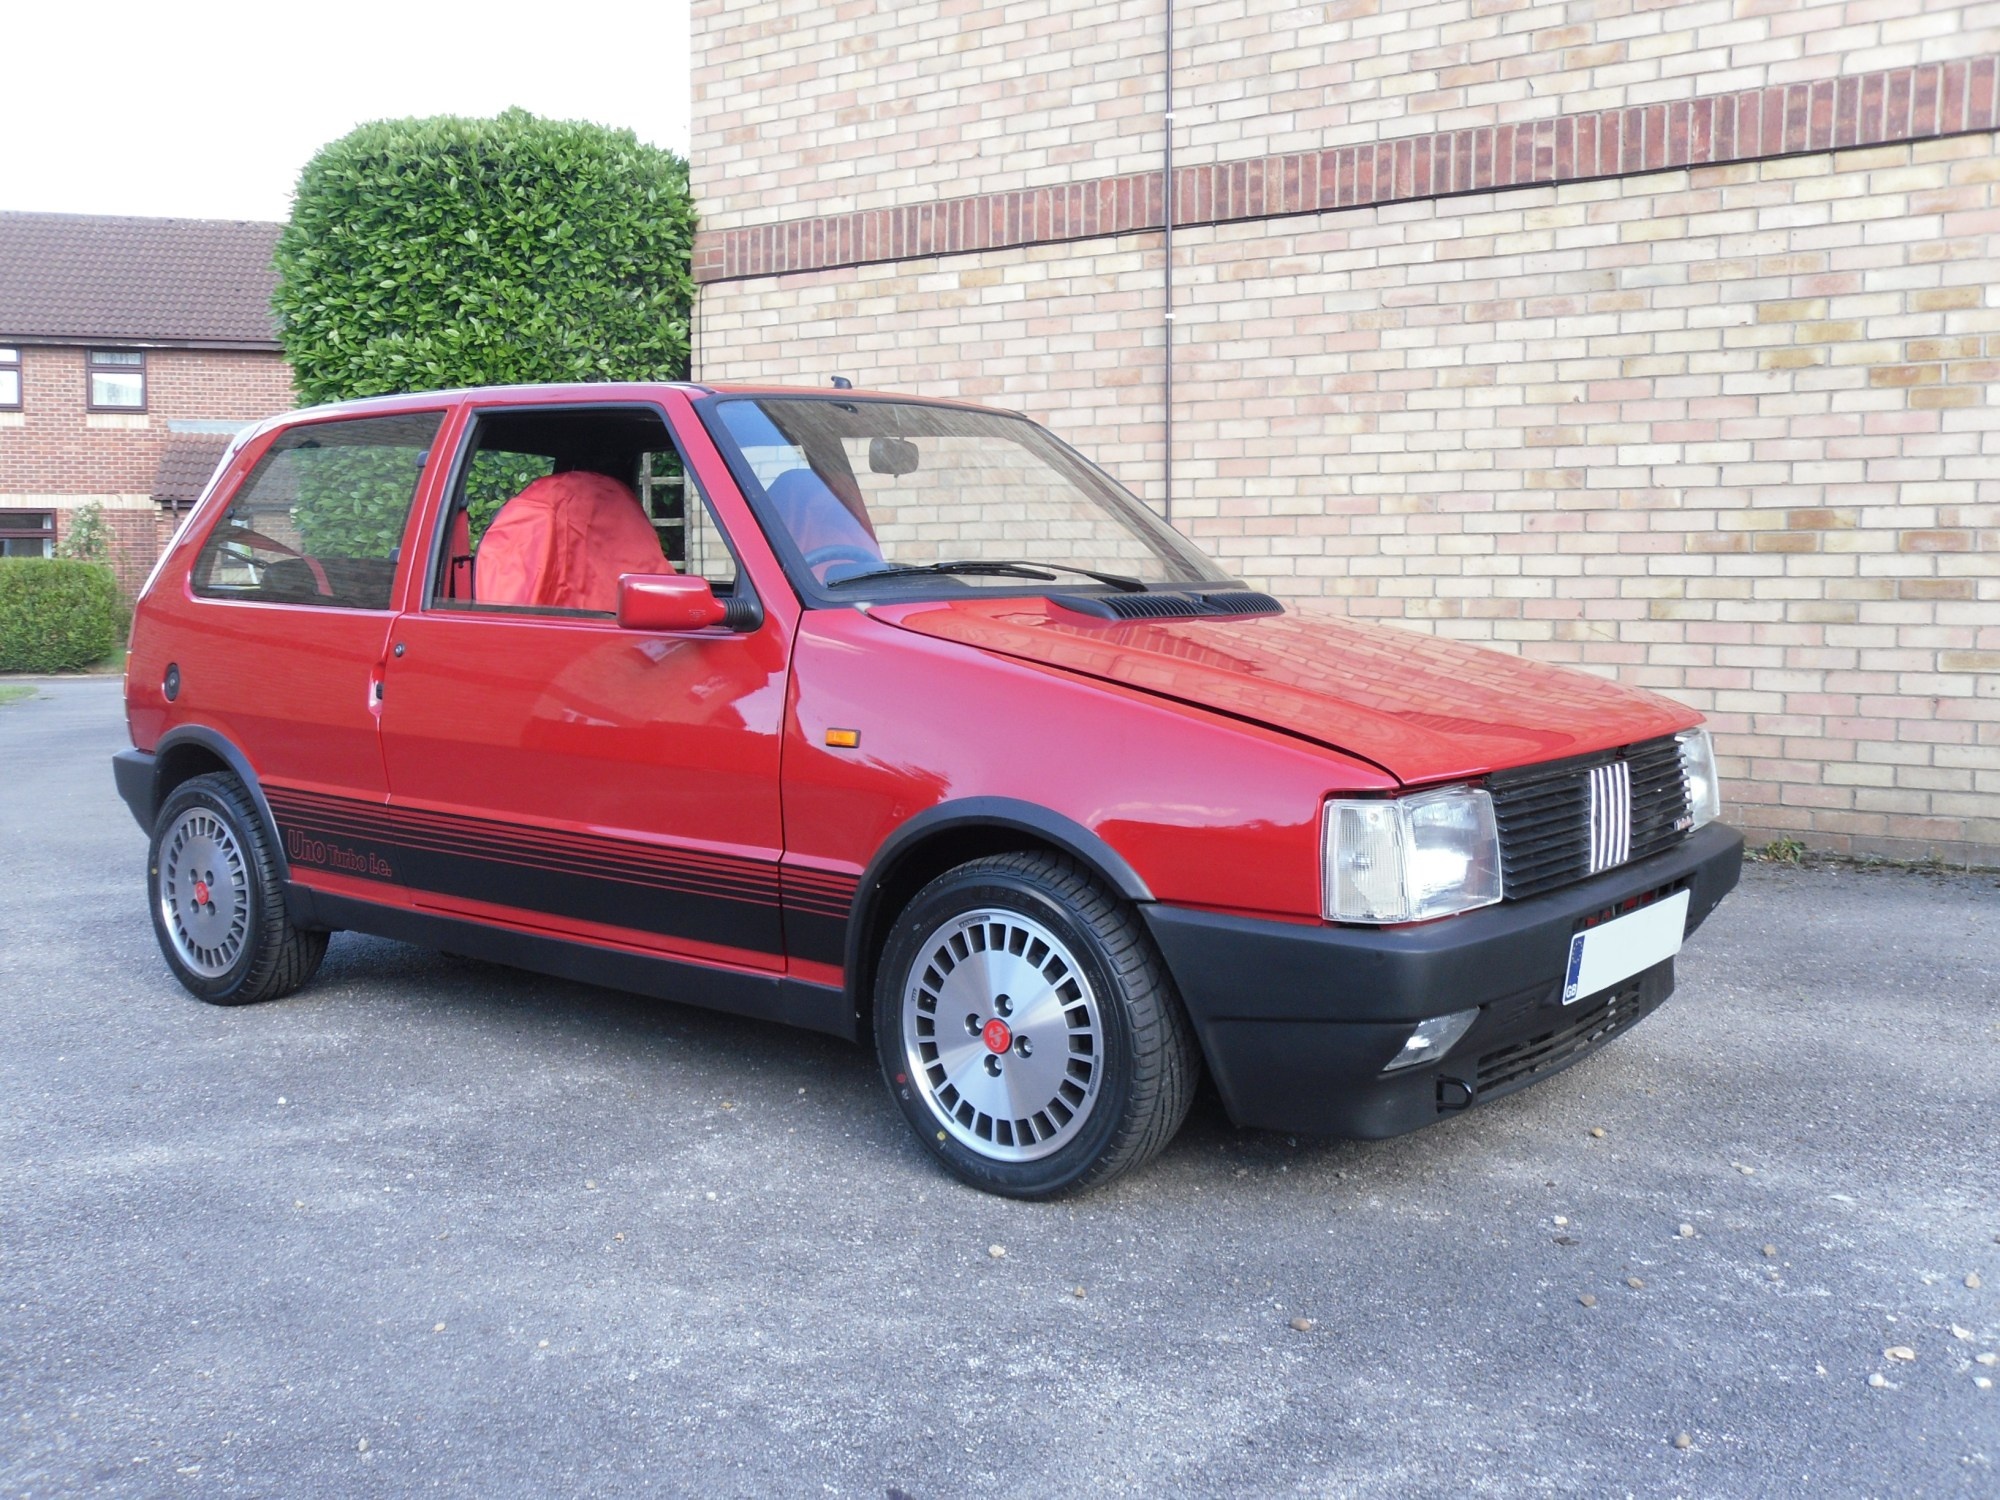 hight resolution of a 1988 fiat uno turbo i e uk registered